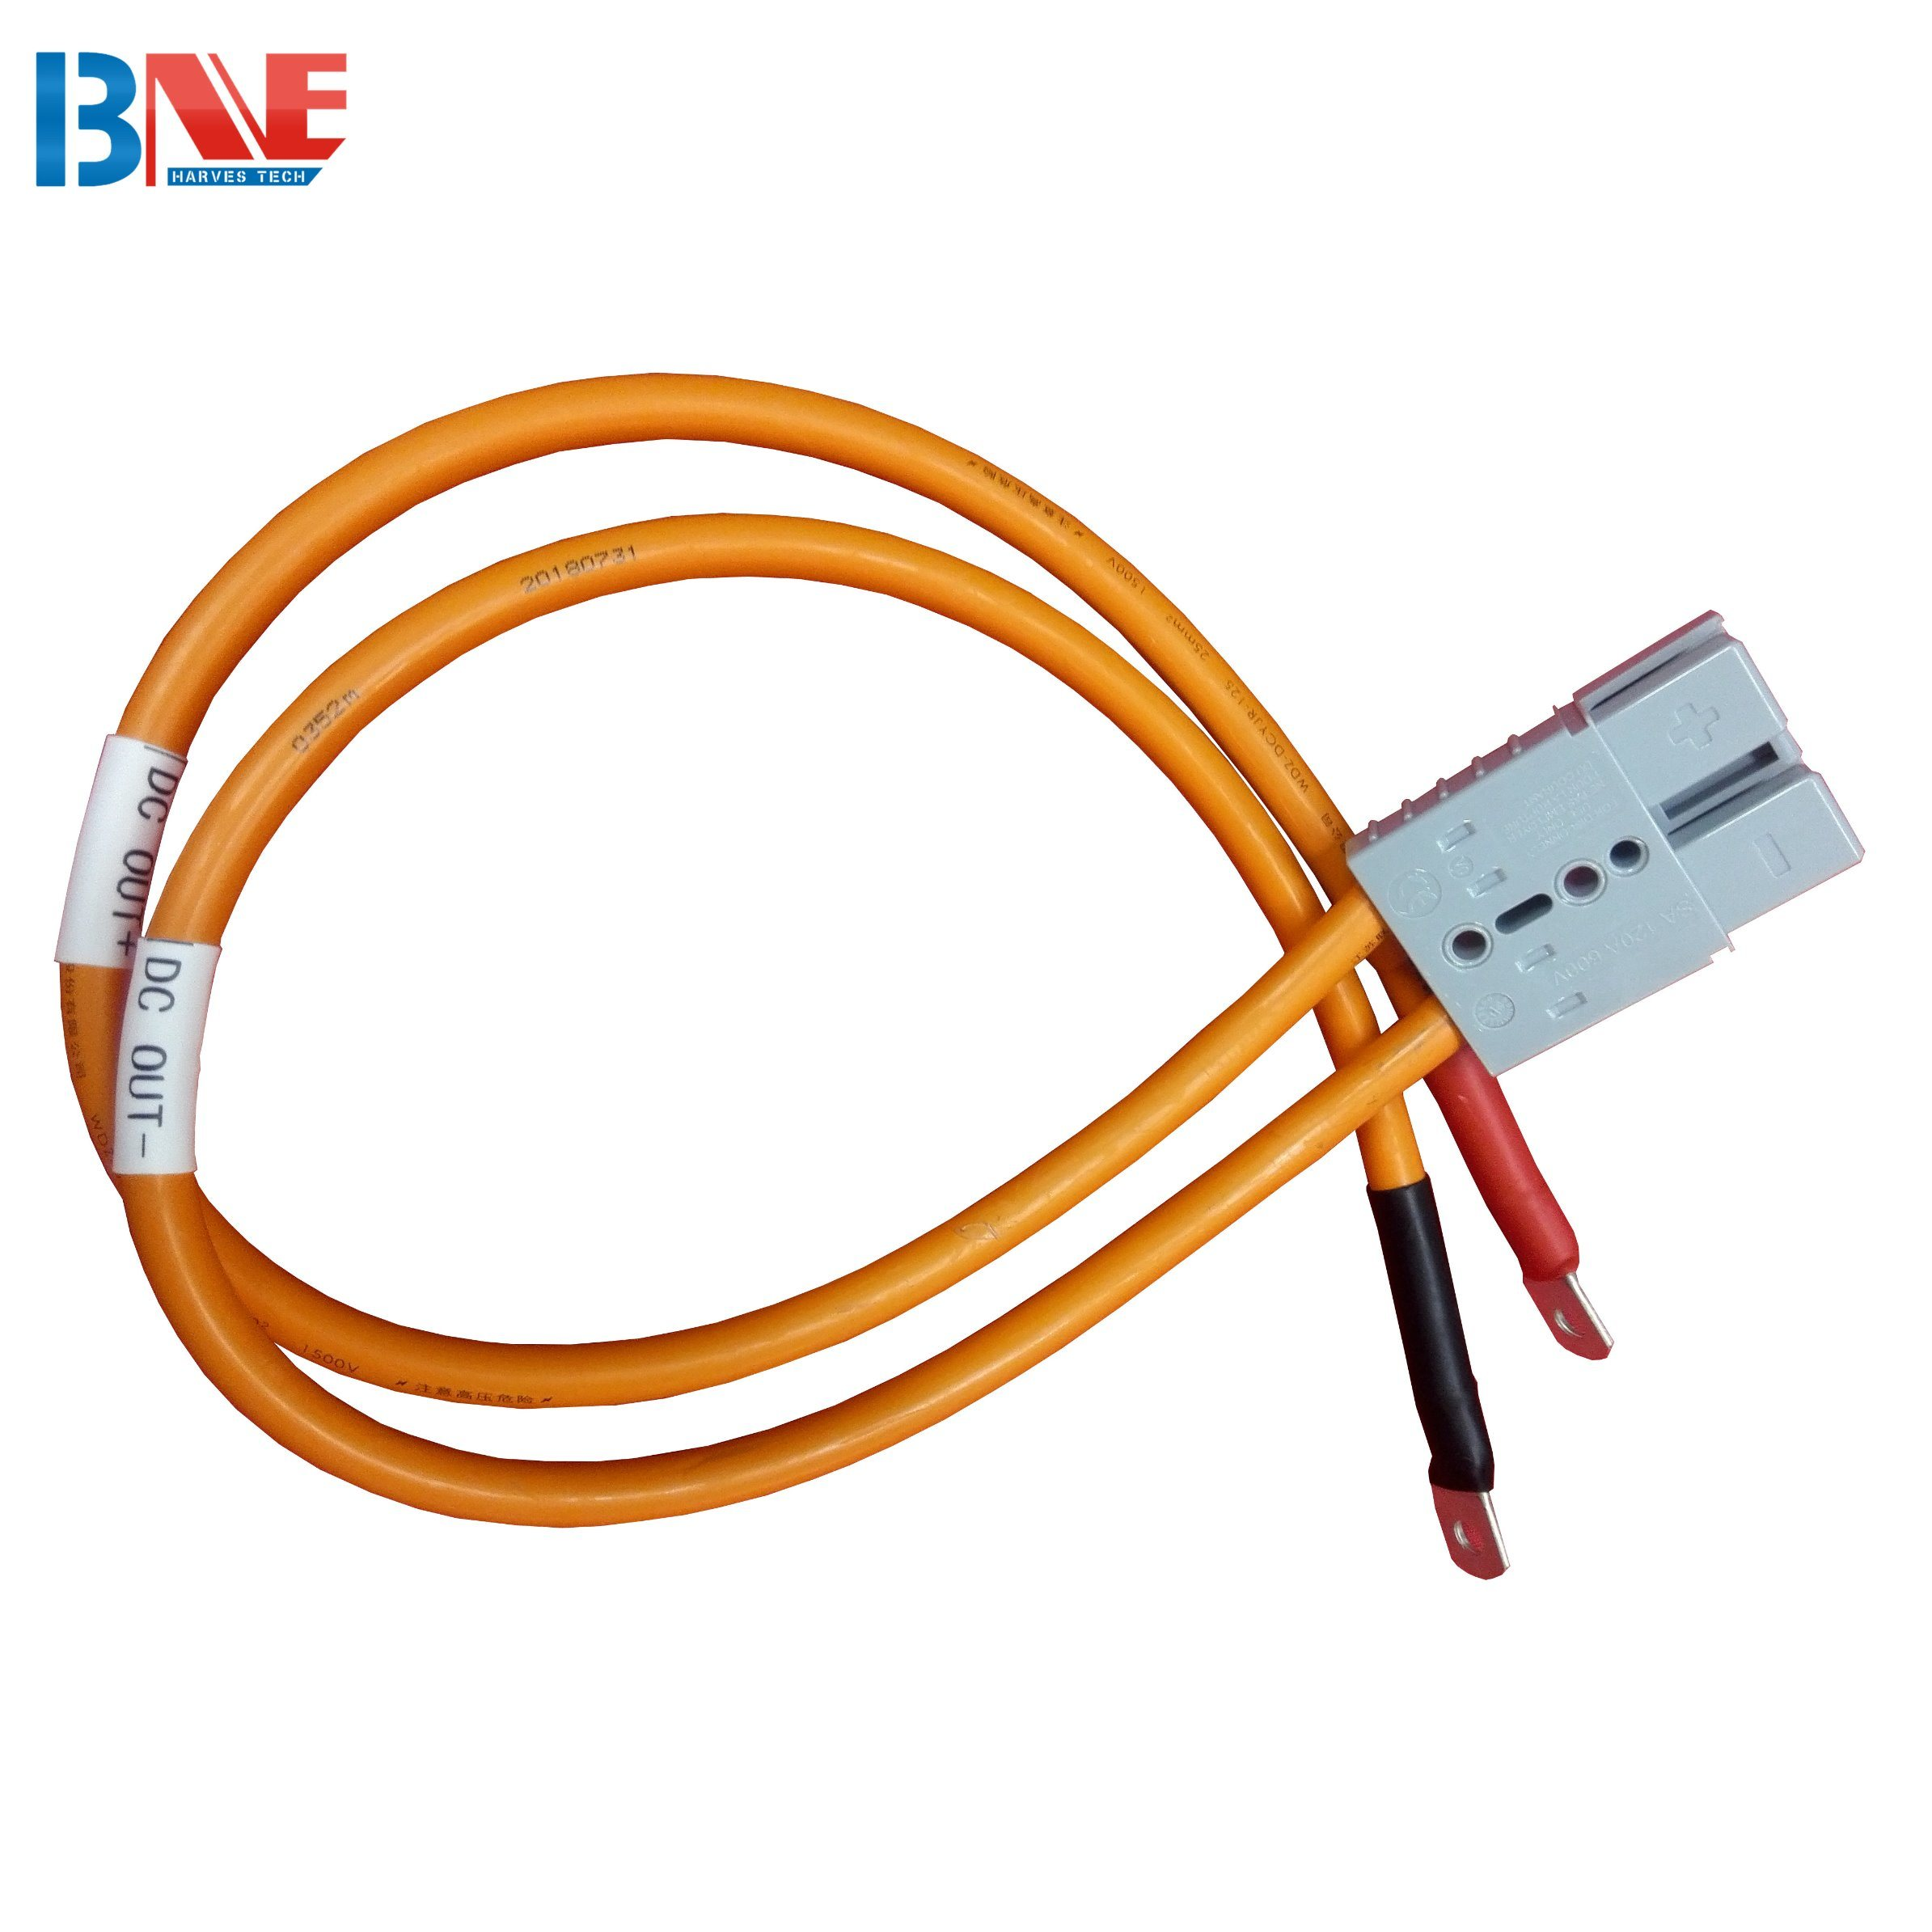 China Customized Industry Automotive Electrical Wiring Harness - China  Electrical Wire Harness, Industrial Cable HarnessBne Harvest Tech Ltd.